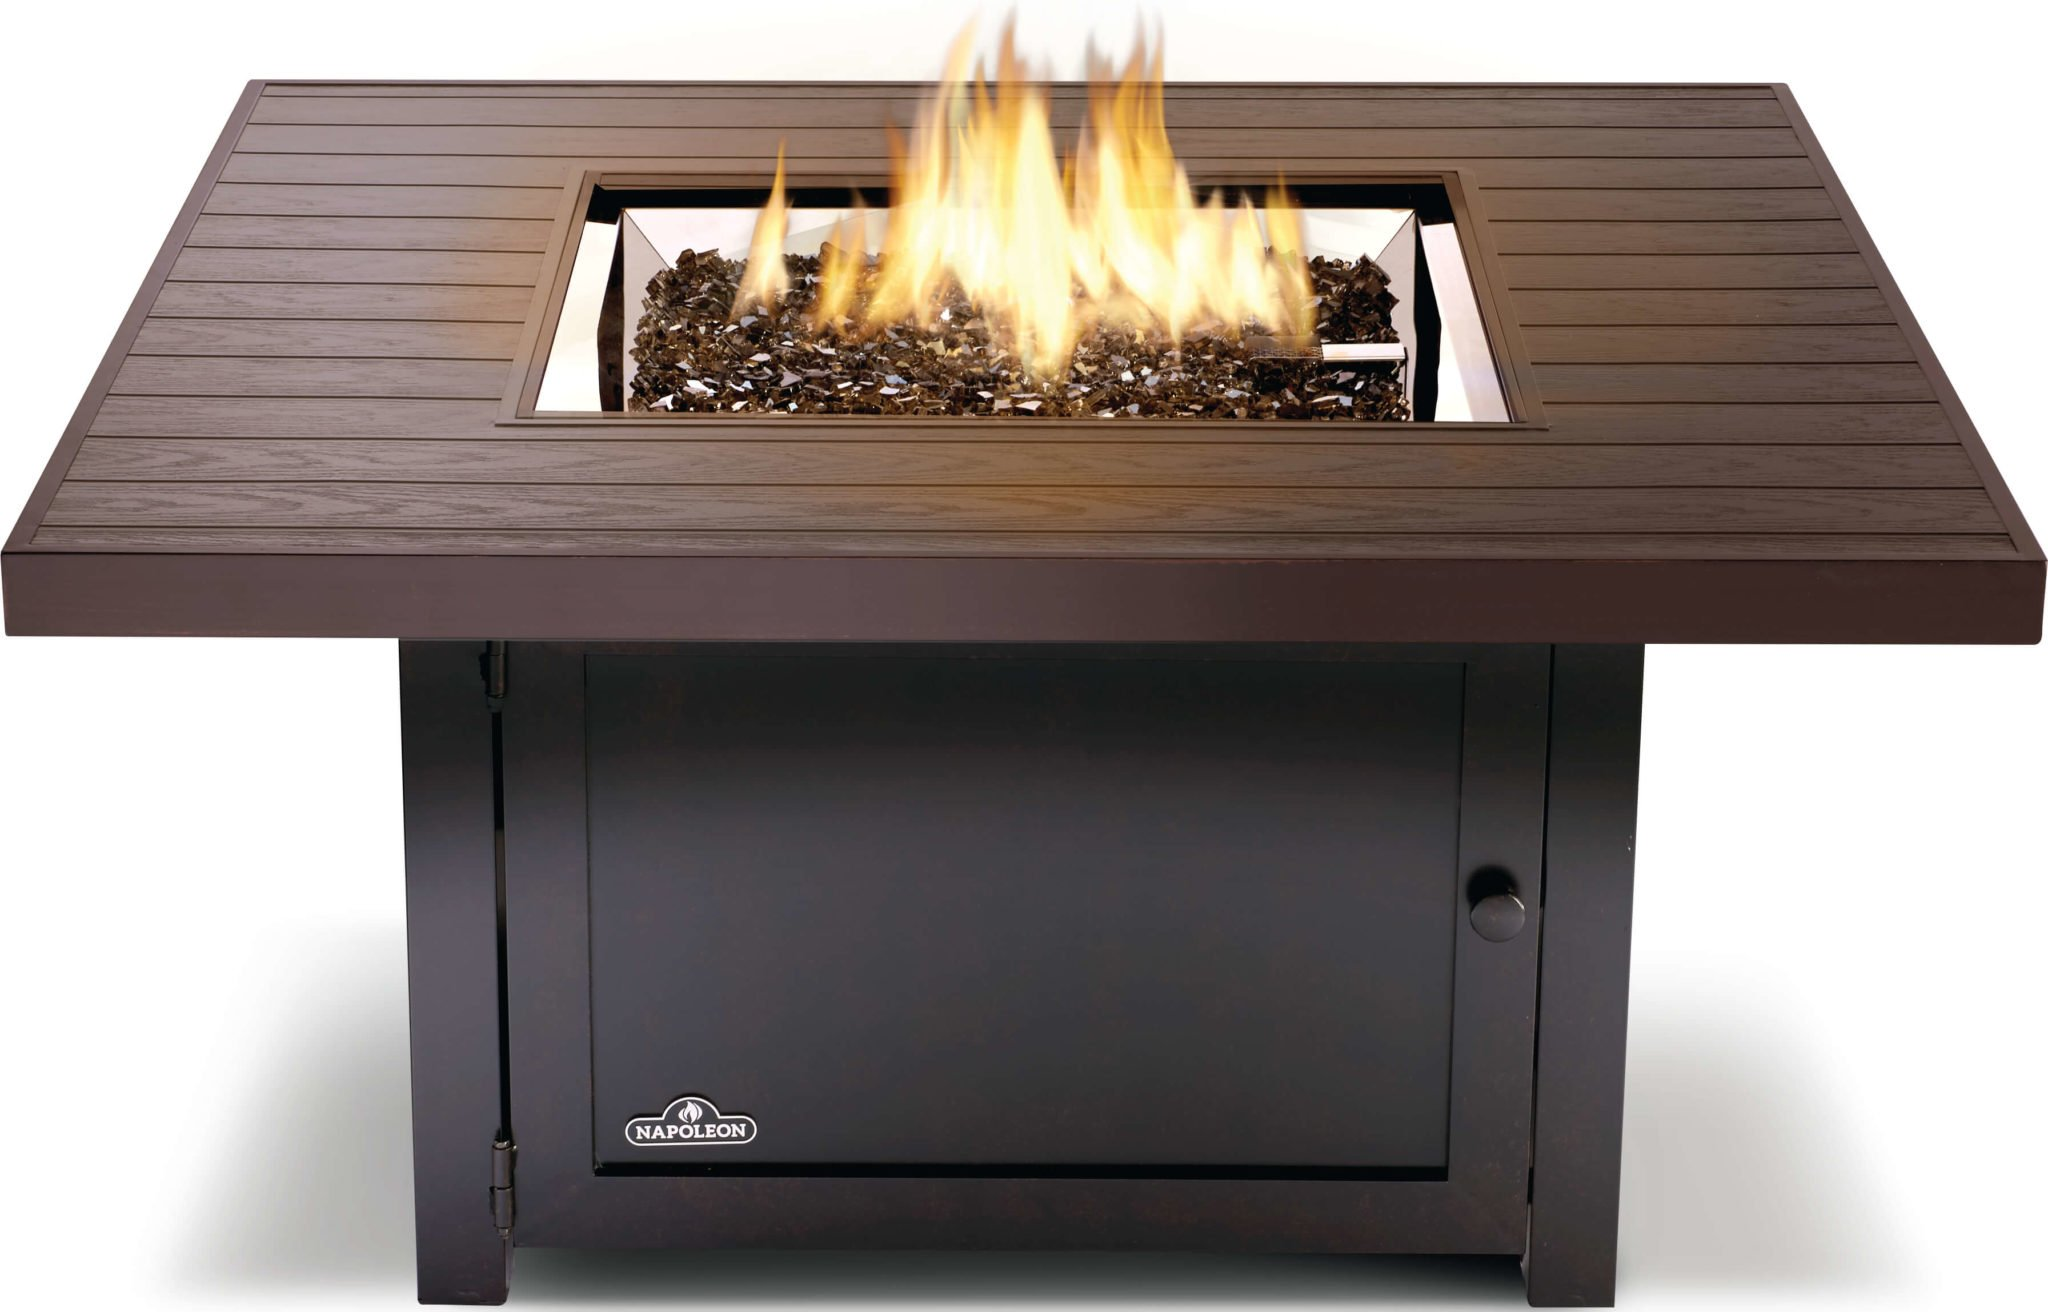 Napoleon Muskoka Square Liquid Propane Patioflame Fire Table Musk2 Bz The Outdoor Appliance Store